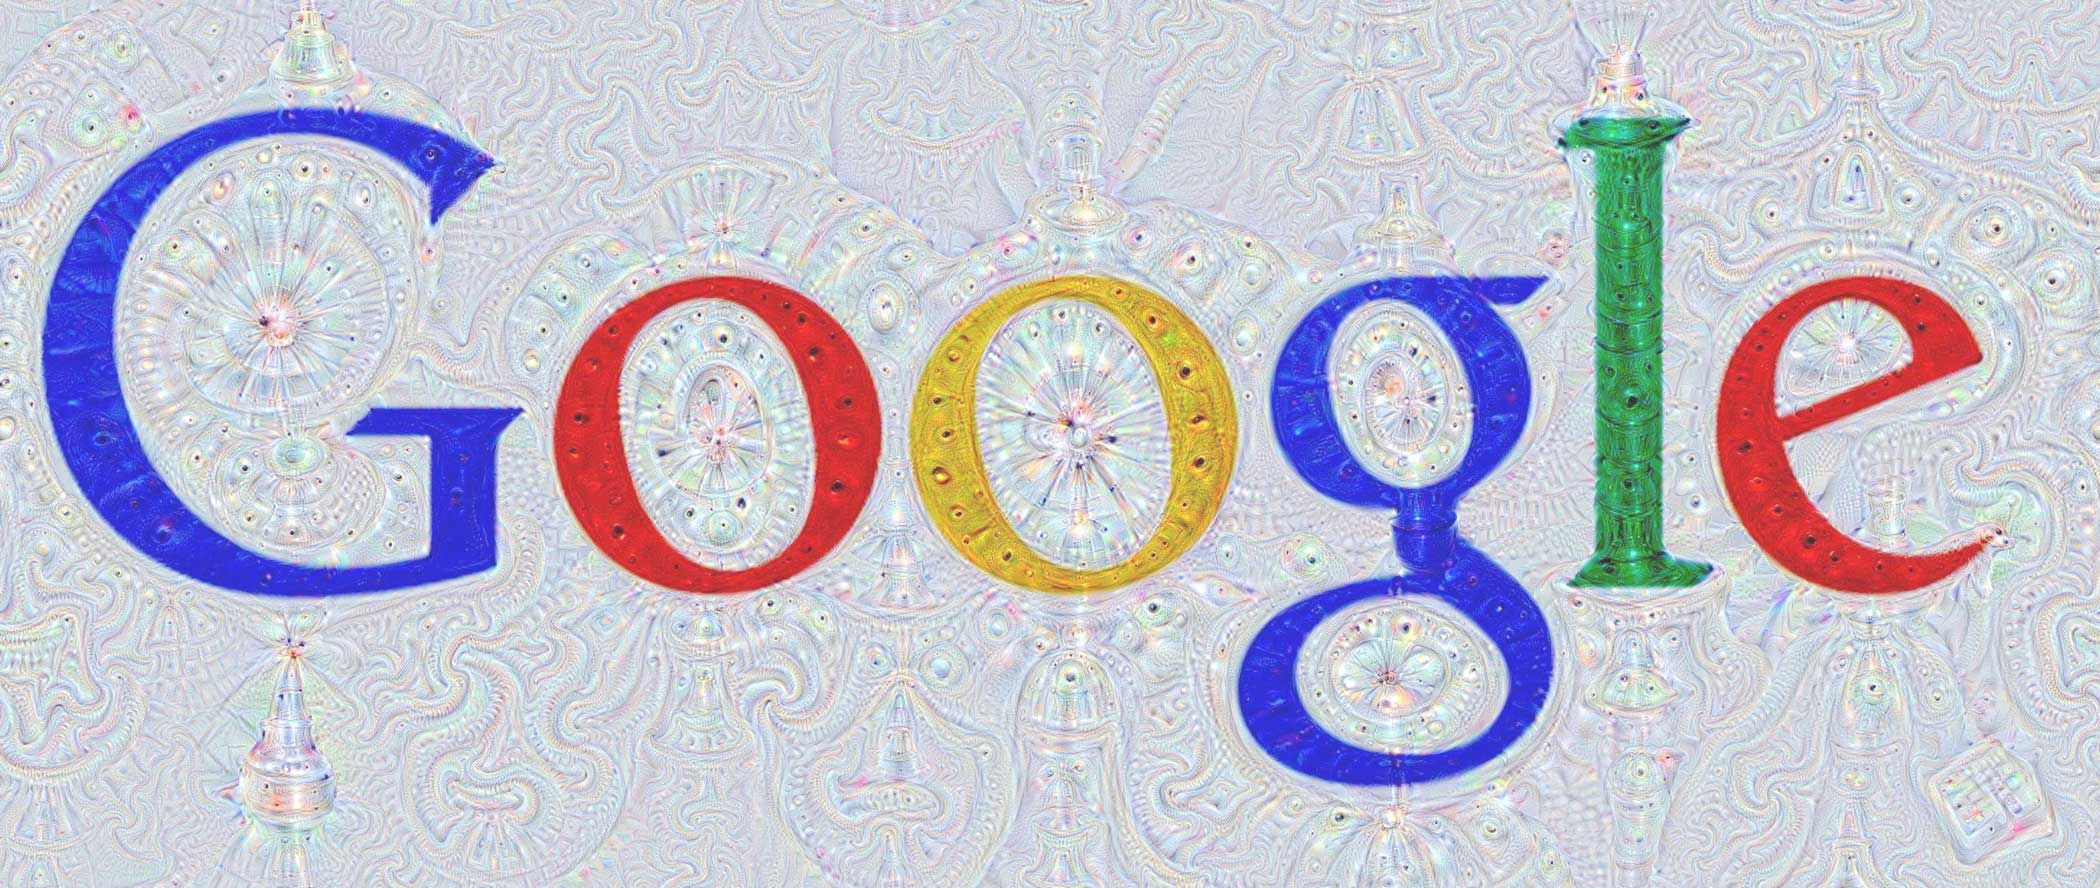 Google will continue using neural networks for everything from voice recognition to identifying people in its Photos app